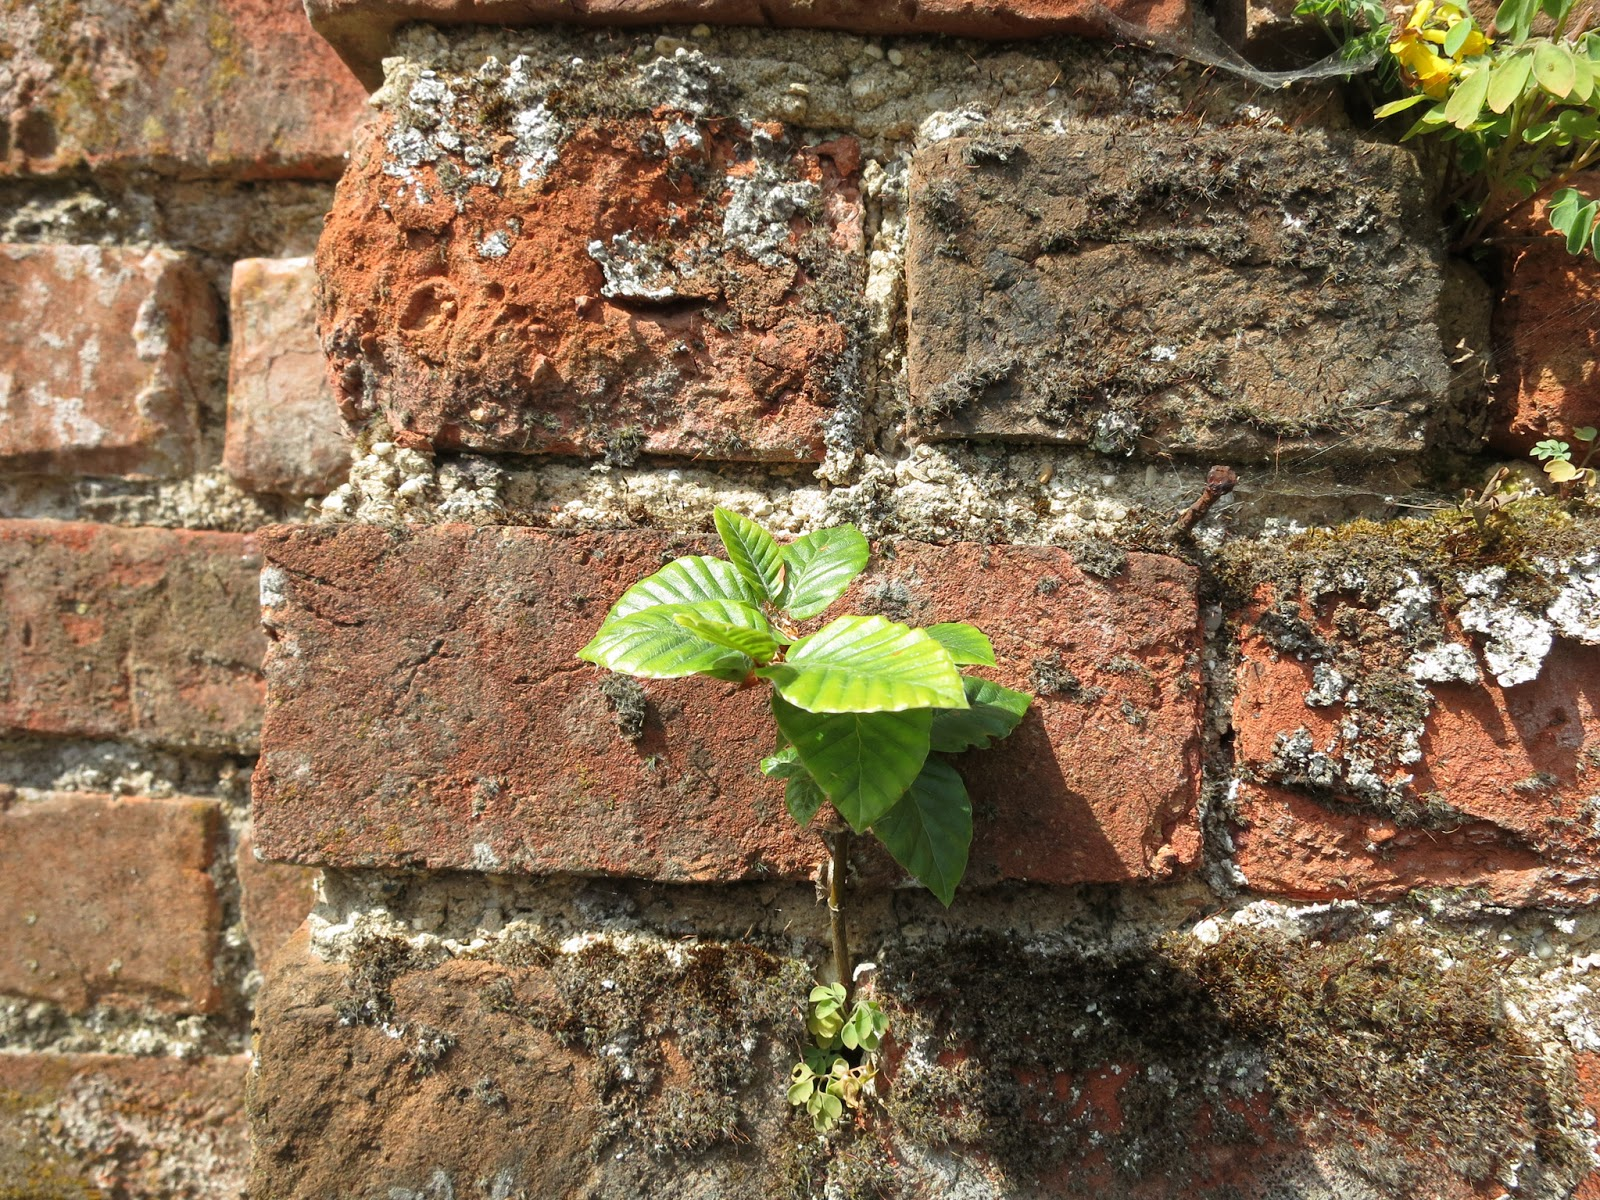 Plant grows from between bricks in old wall